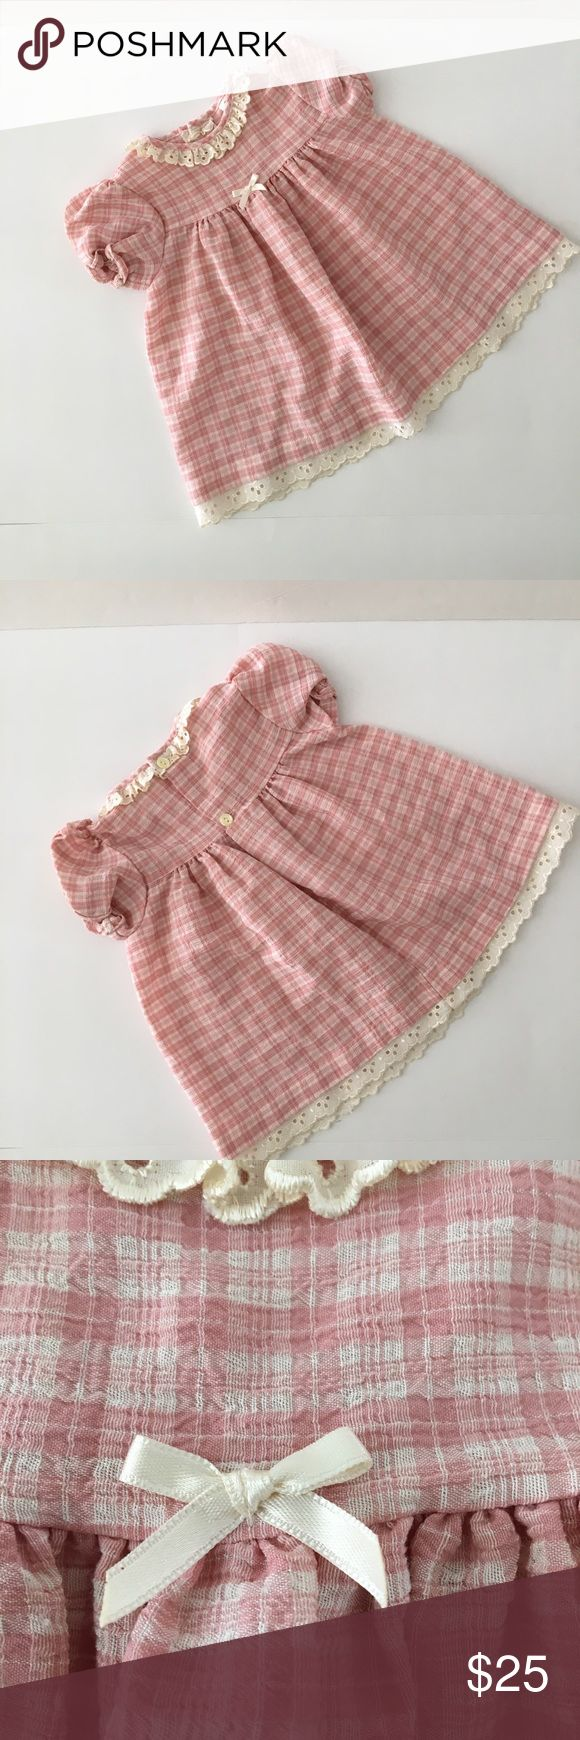 Beautiful baby girls dress Well made girls dress with Center bow detail and matching eyelet collar and trip on hem. Two button back closure. Short sleeves. tesco Dresses Casual